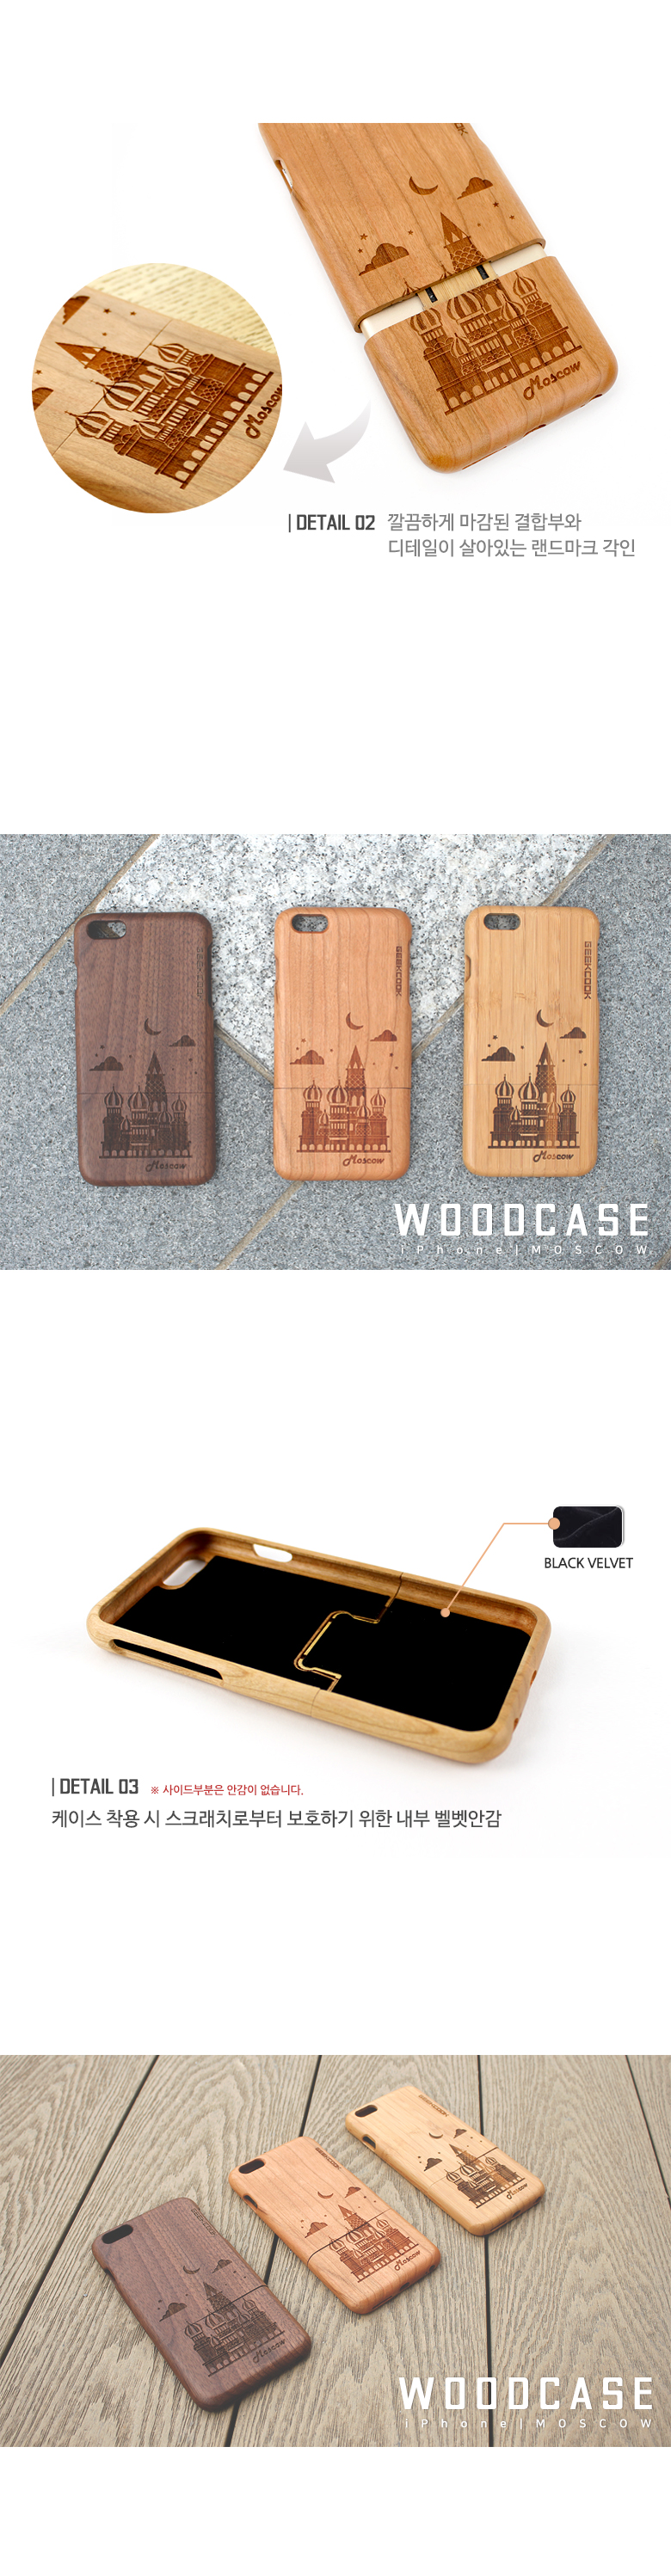 [ BISKET ] iPhone 6/6plus Landmark Wood Case Moscba